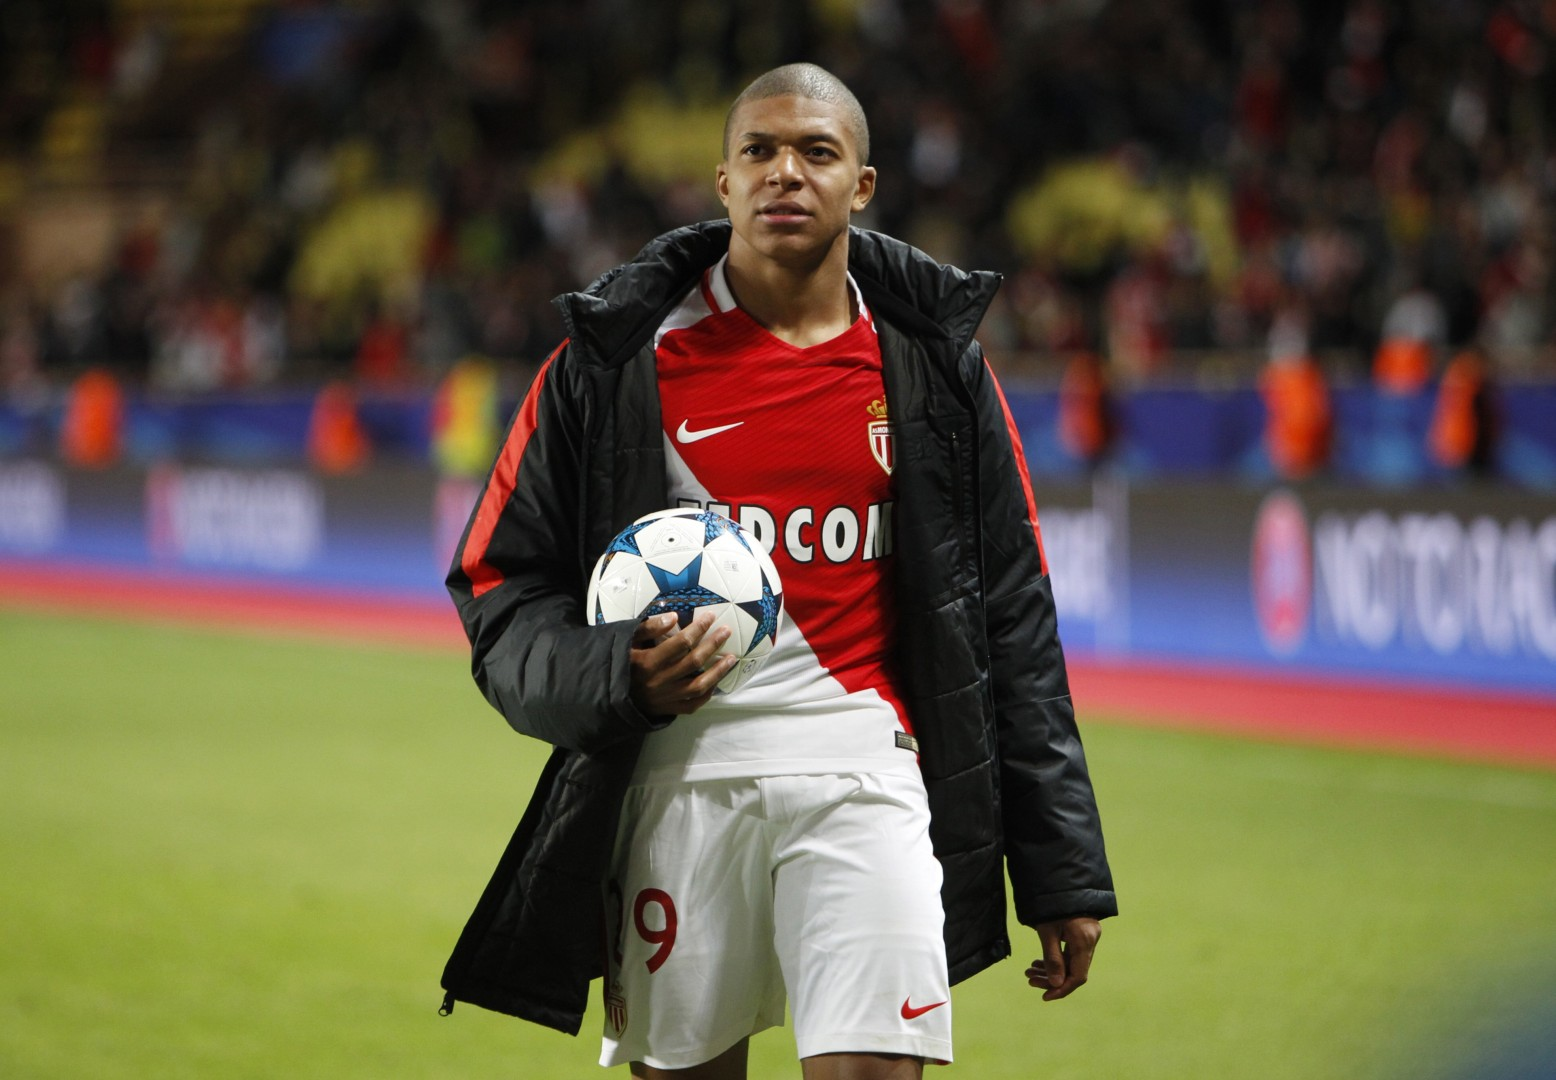 2b1371682 Real Madrid reportedly sign gifted striker Kylian Mbappe in world record  deal